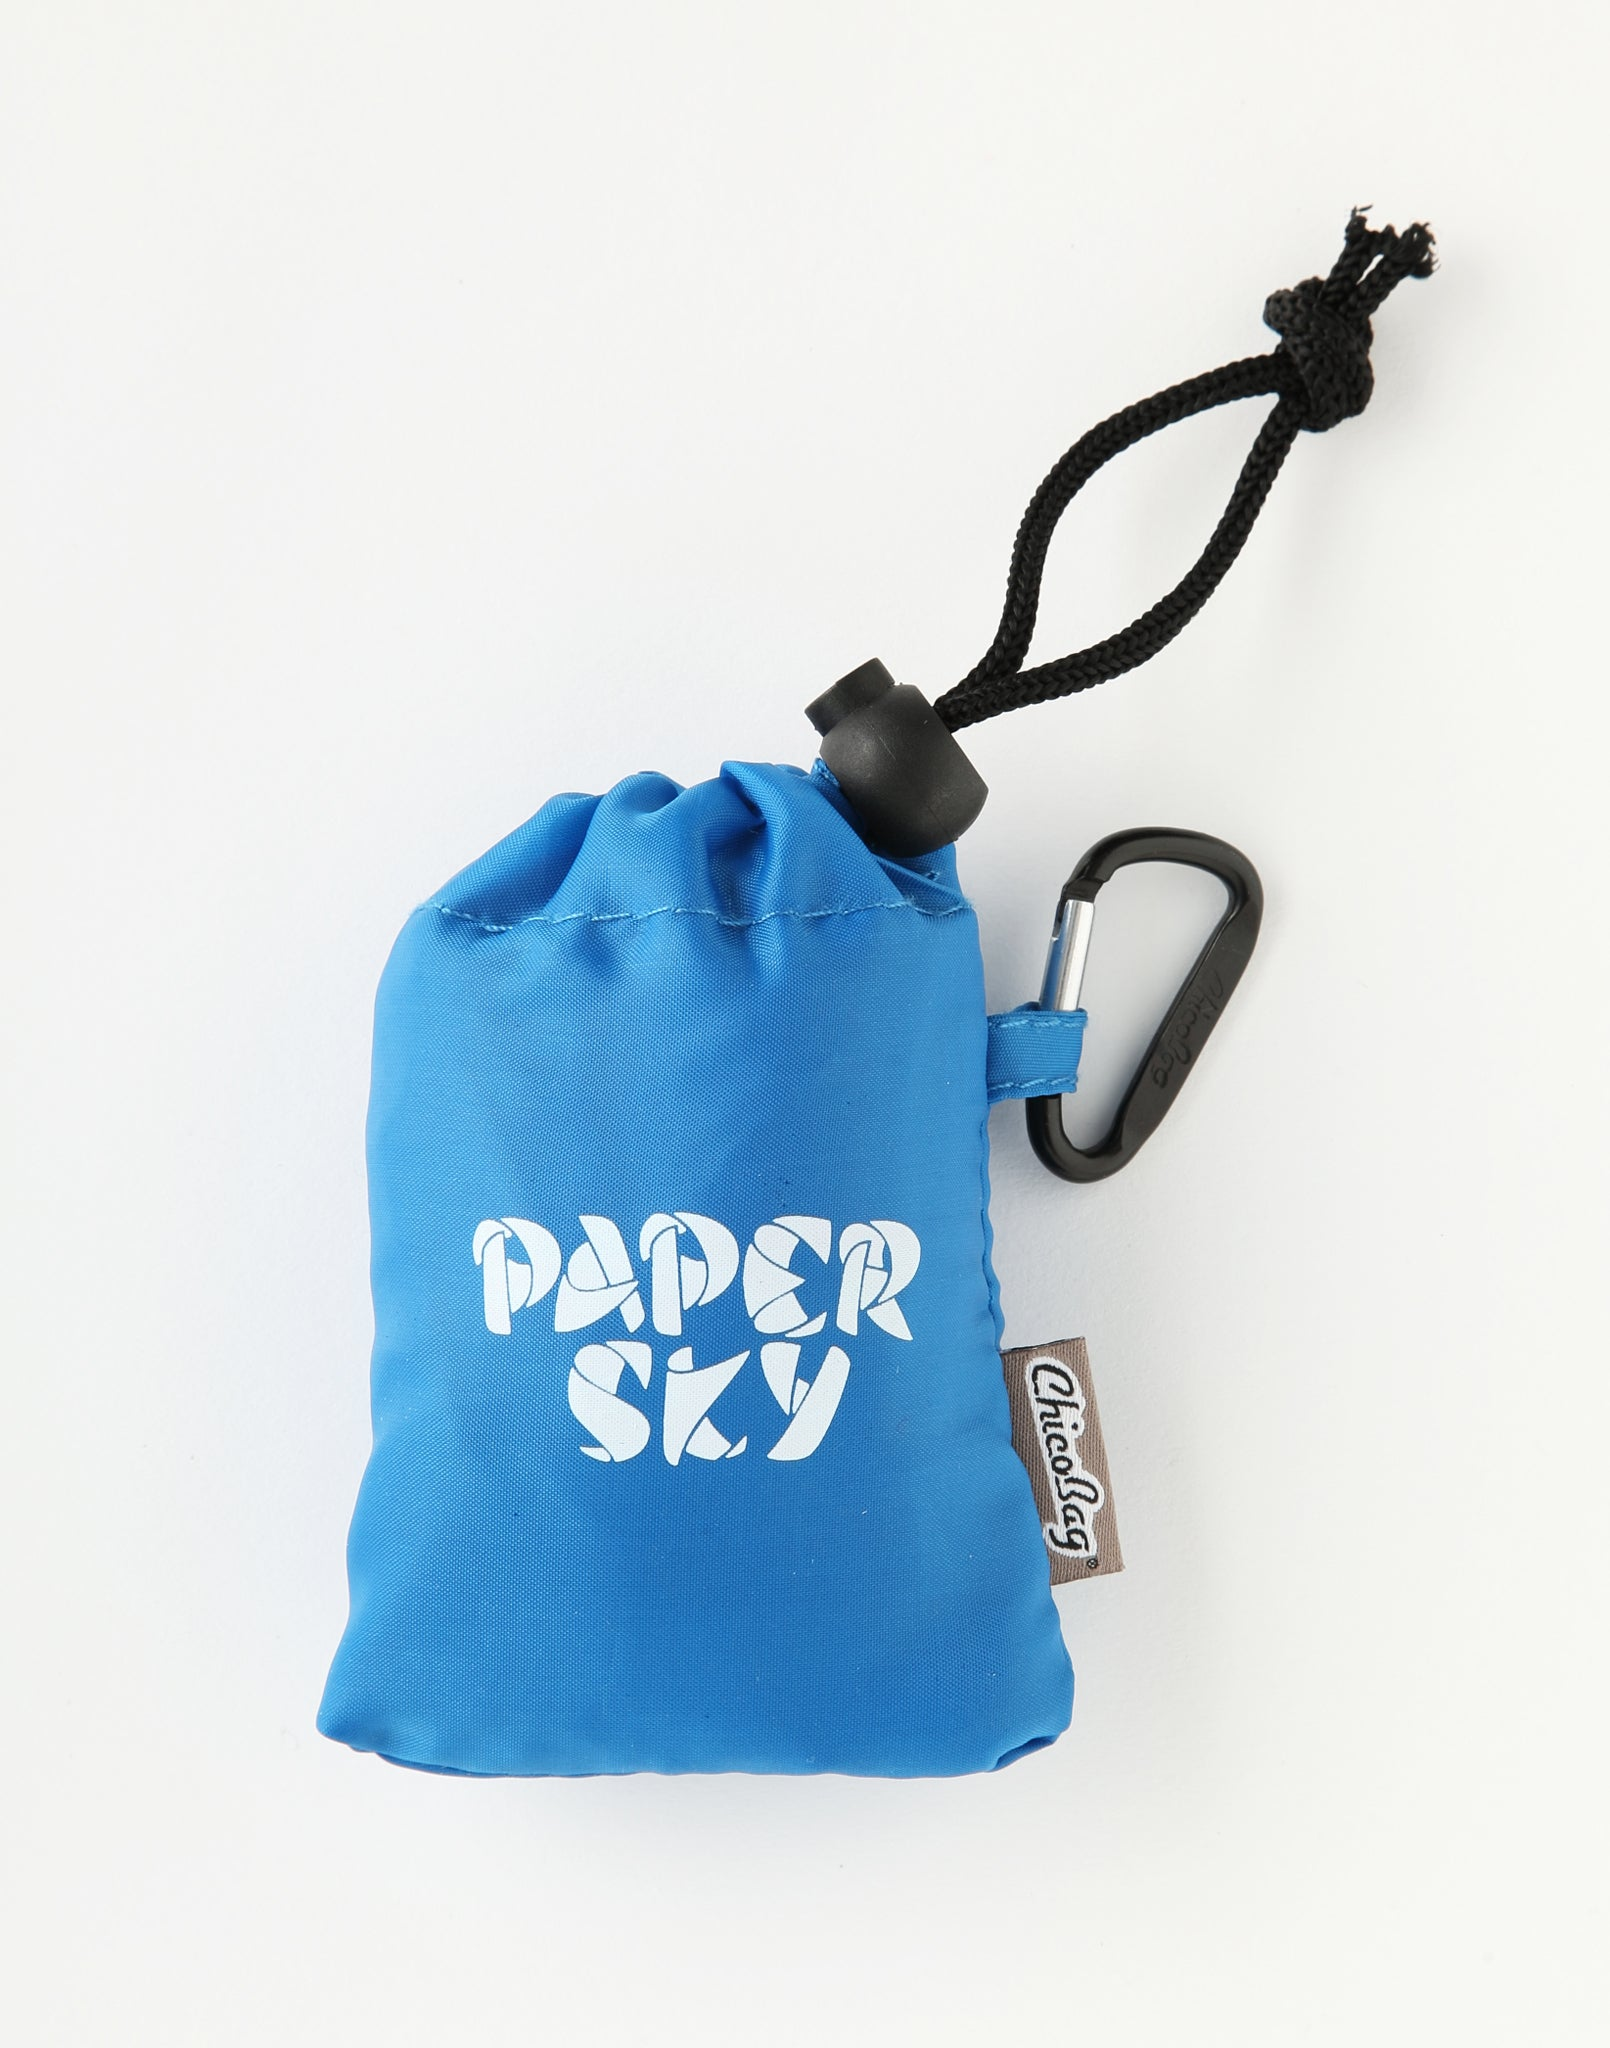 nieves design for papersky chico bag eco bag